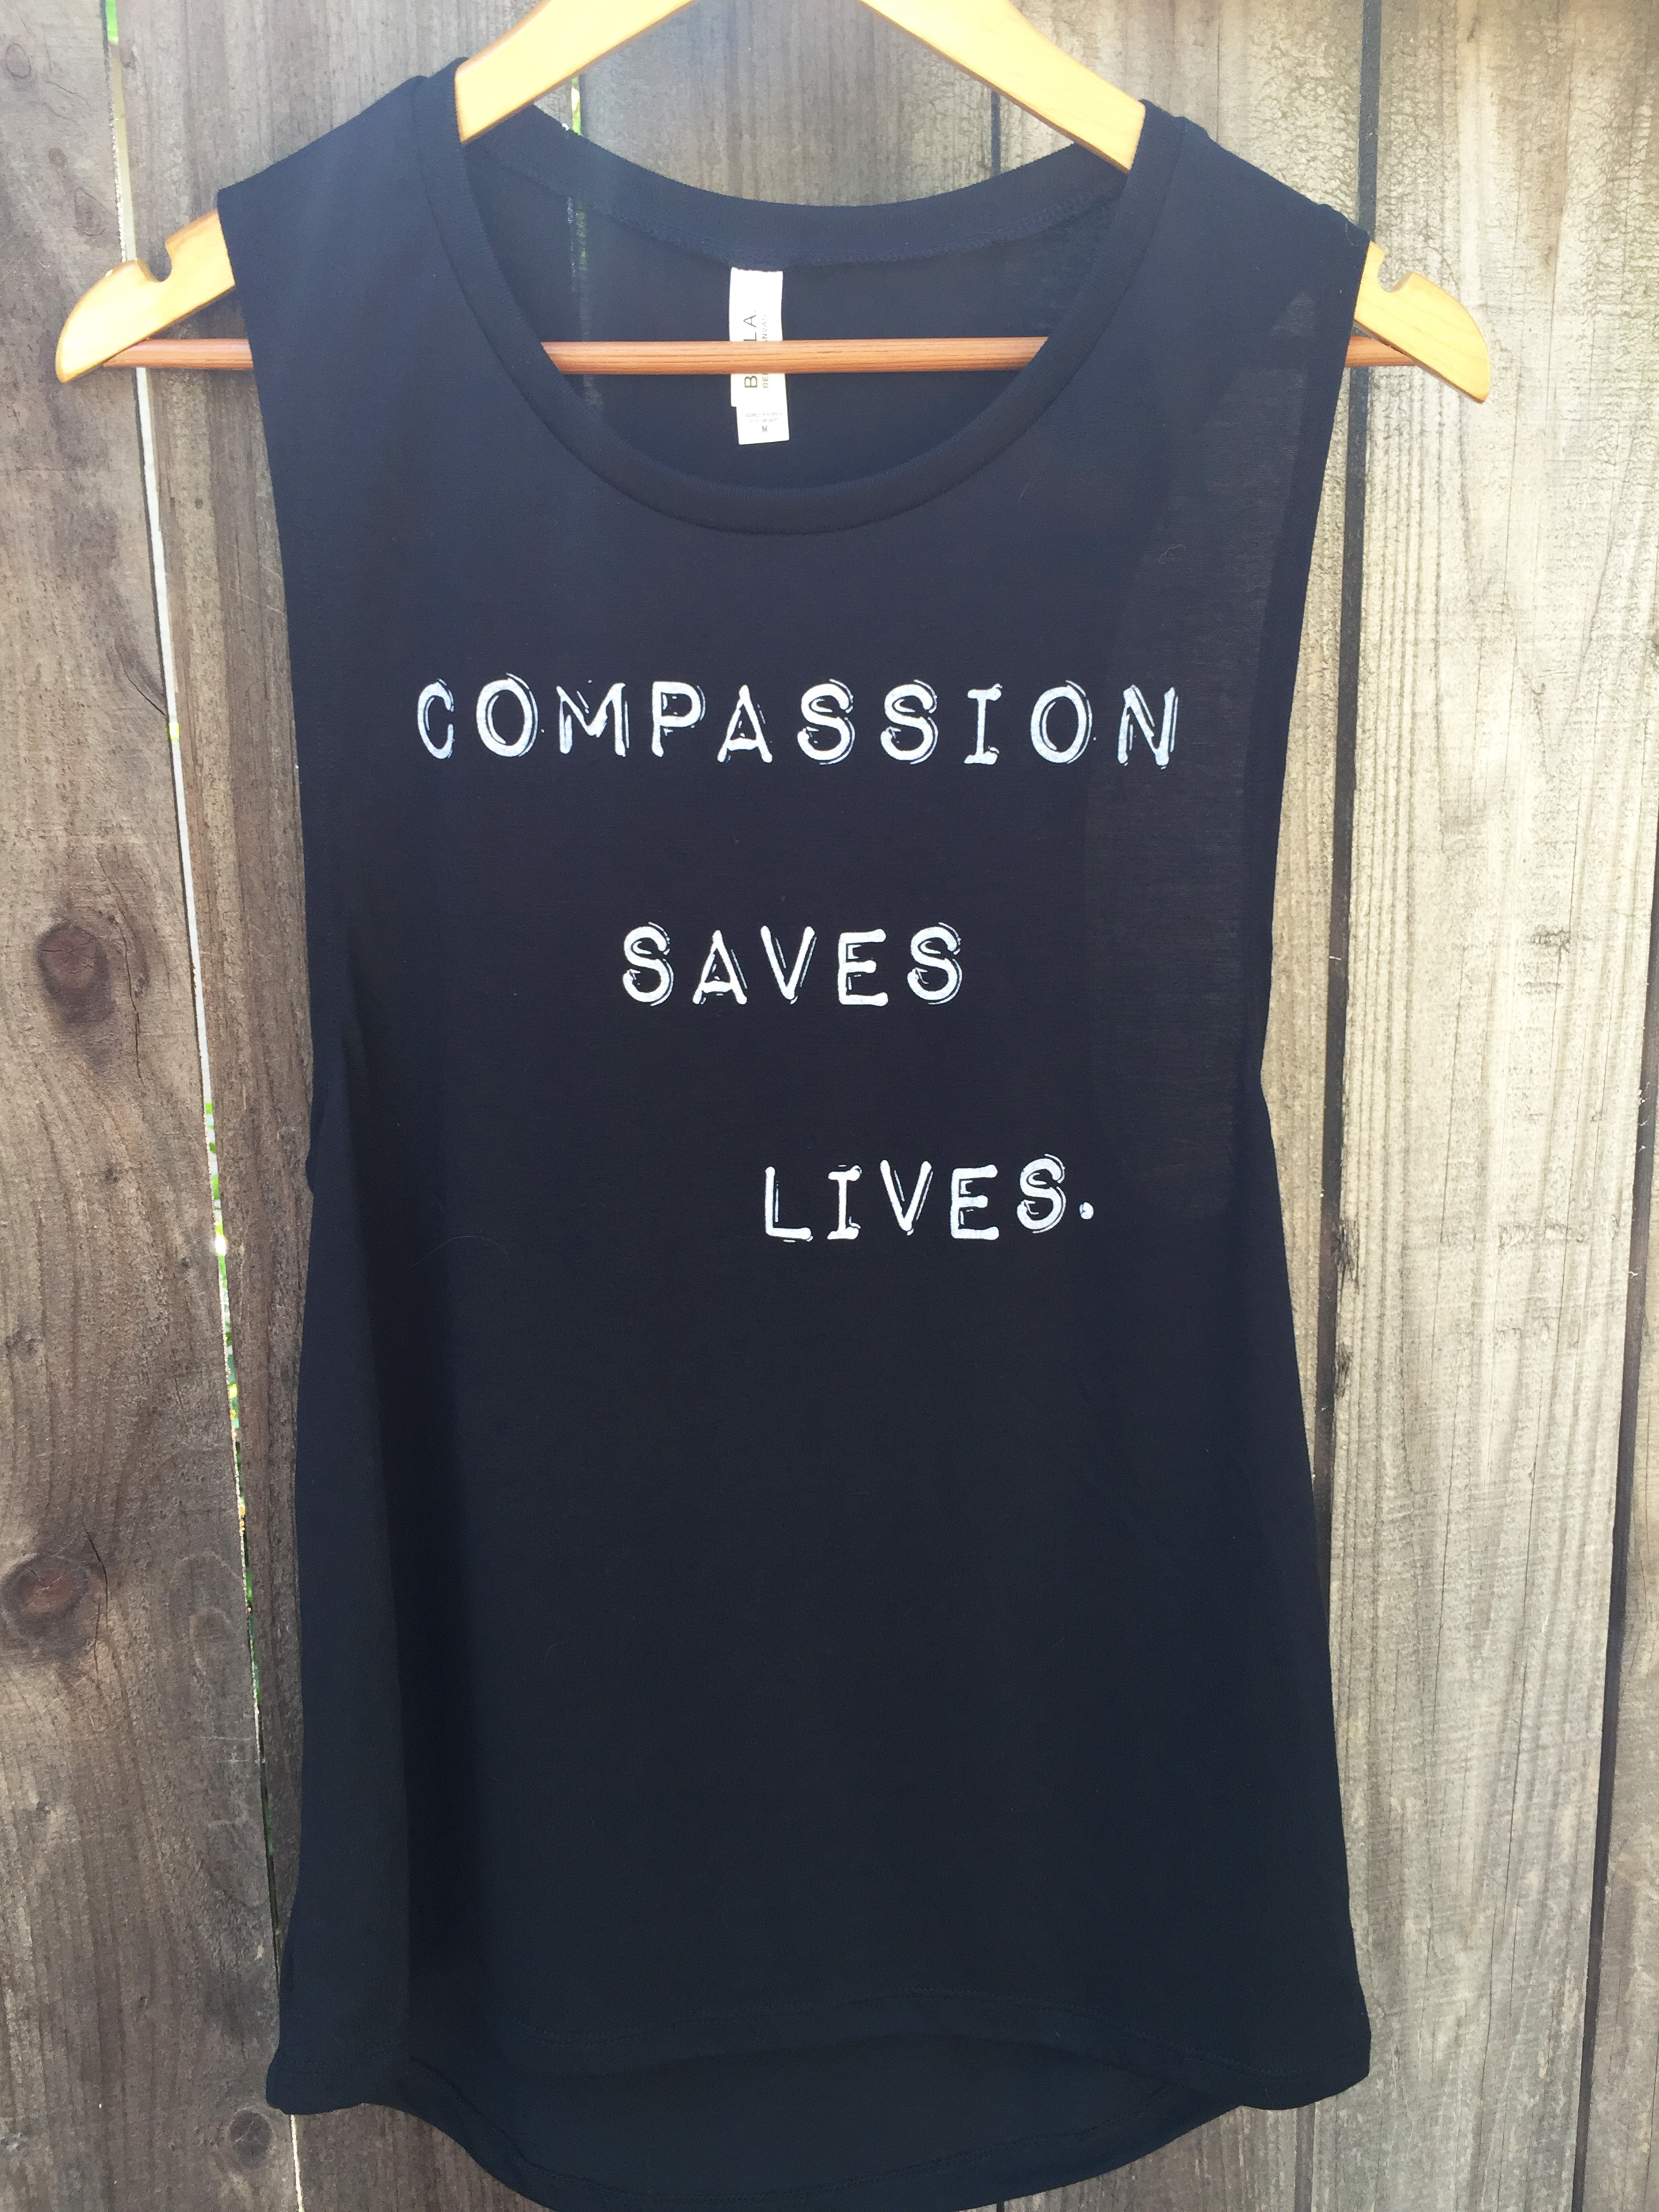 CompassionSaves_Hanging.JPG